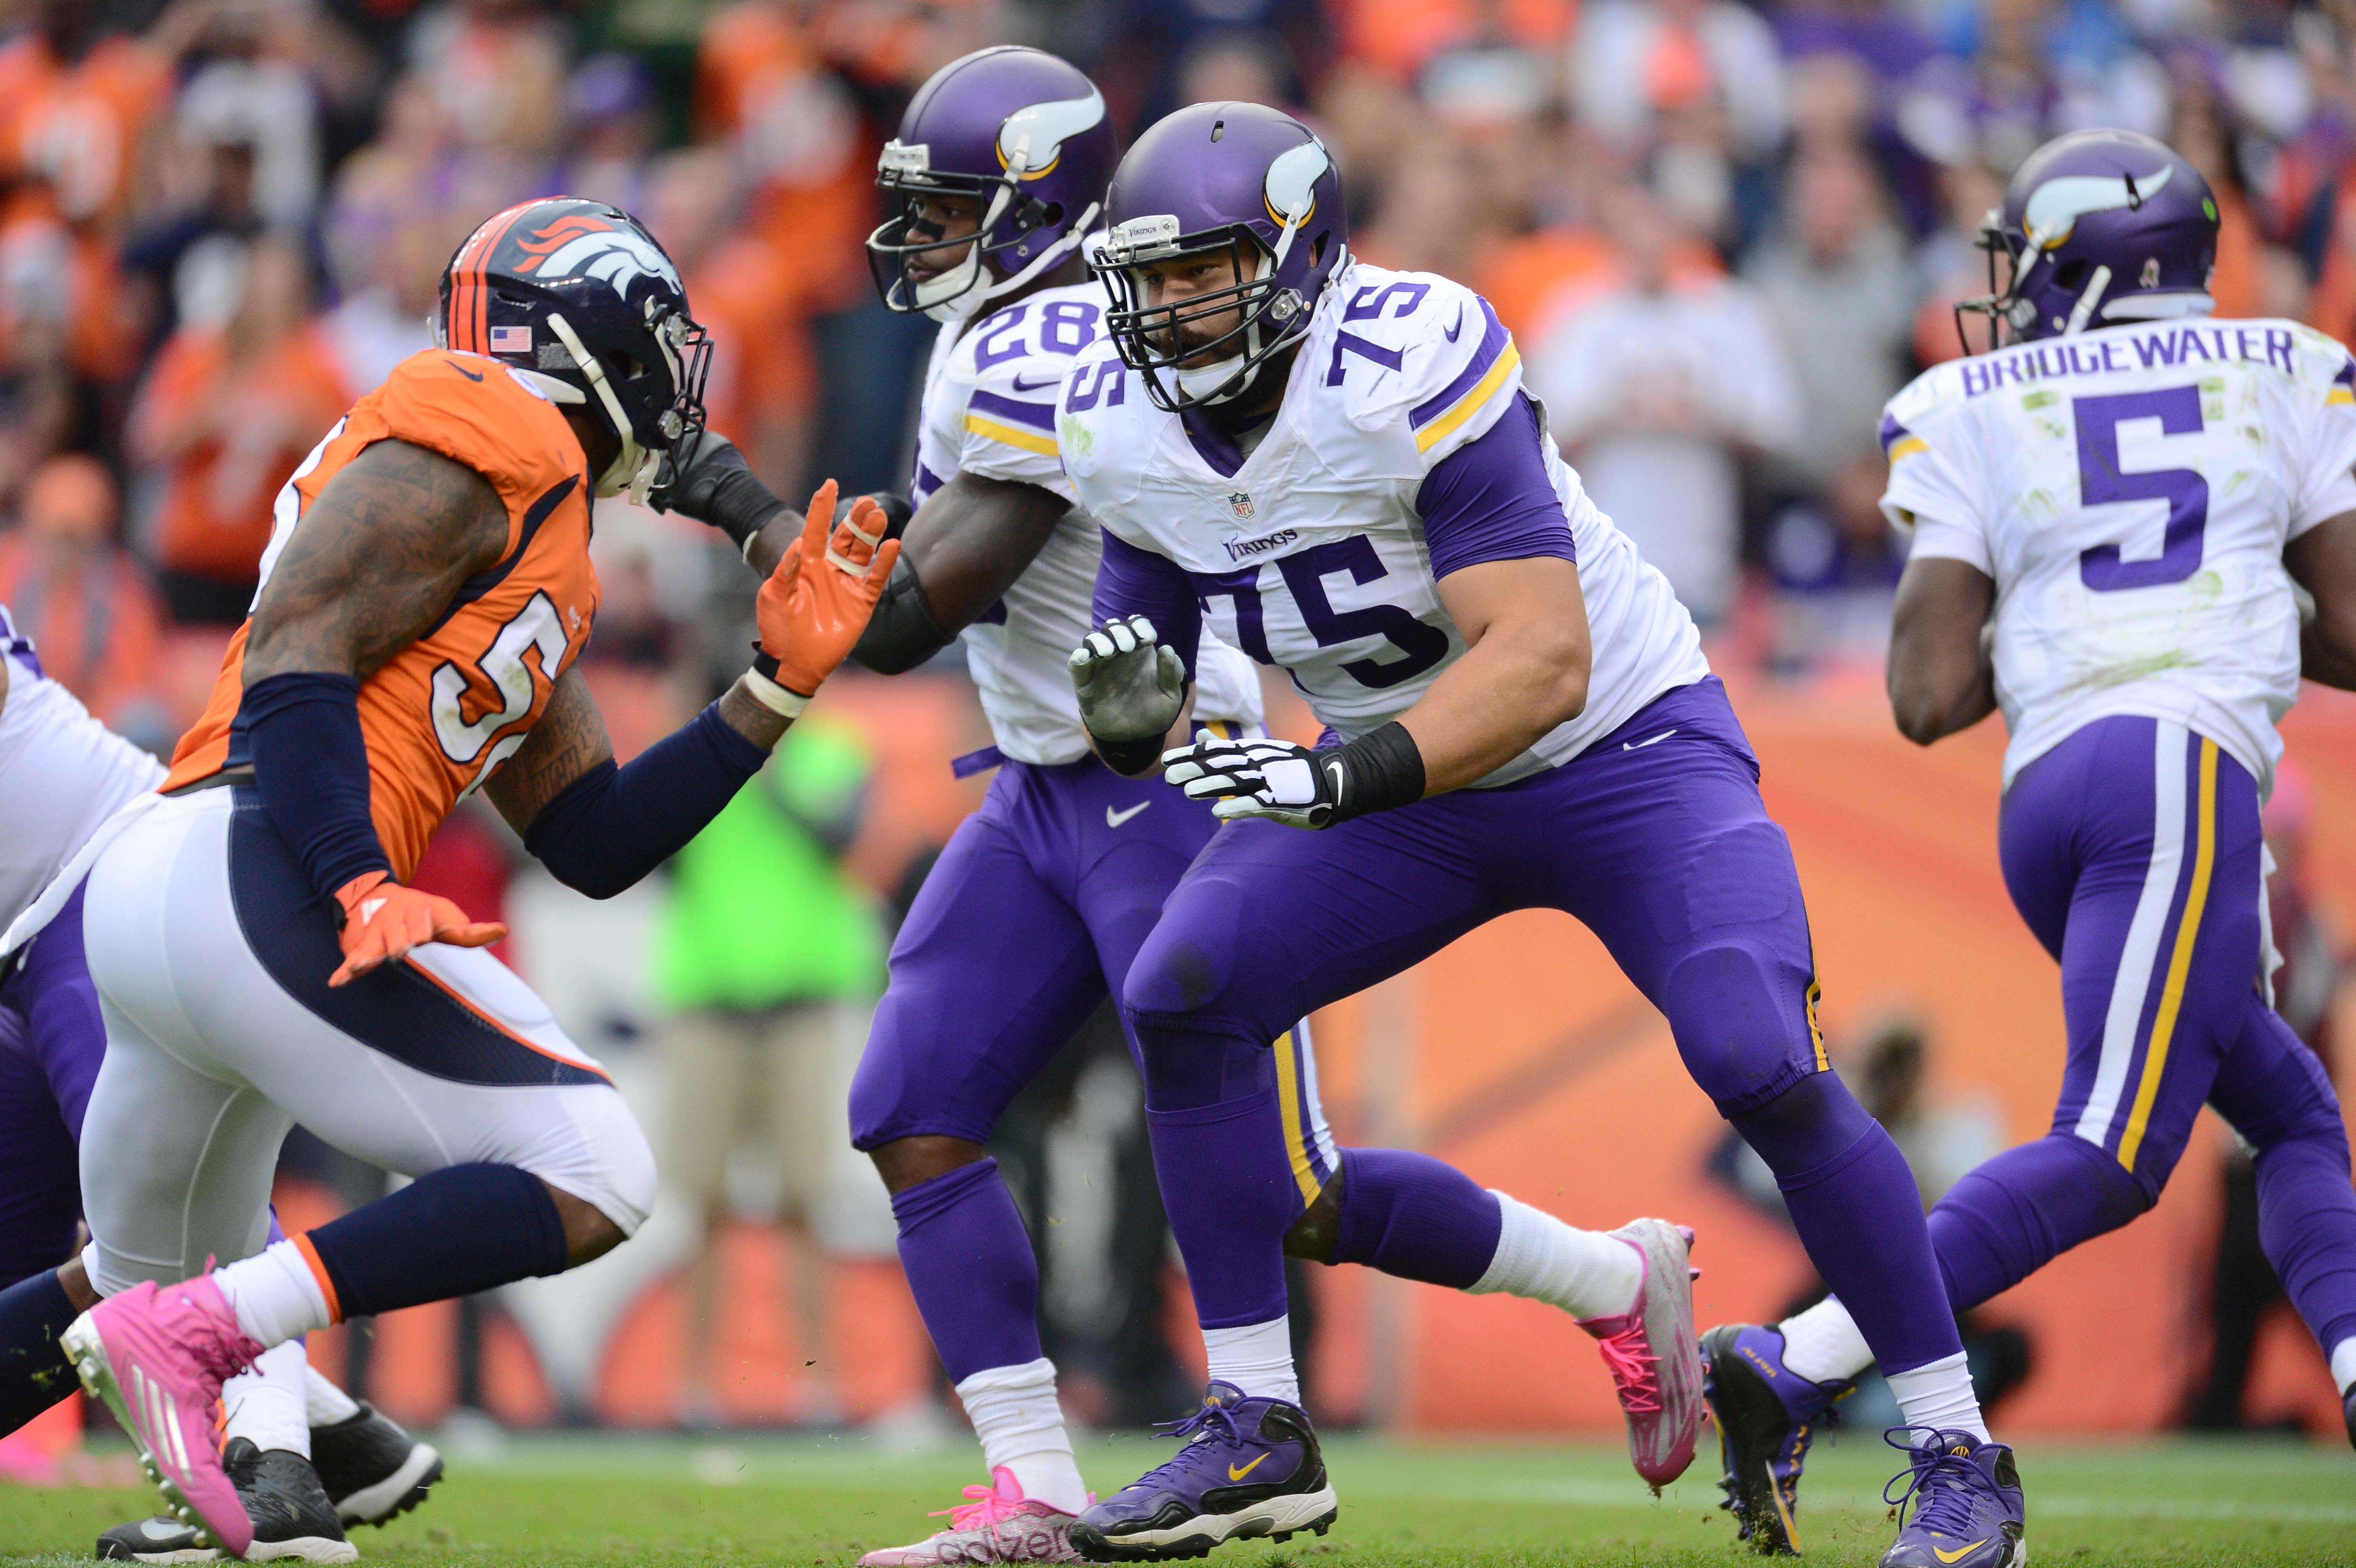 8875324-nfl-minnesota-vikings-at-denver-broncos-1